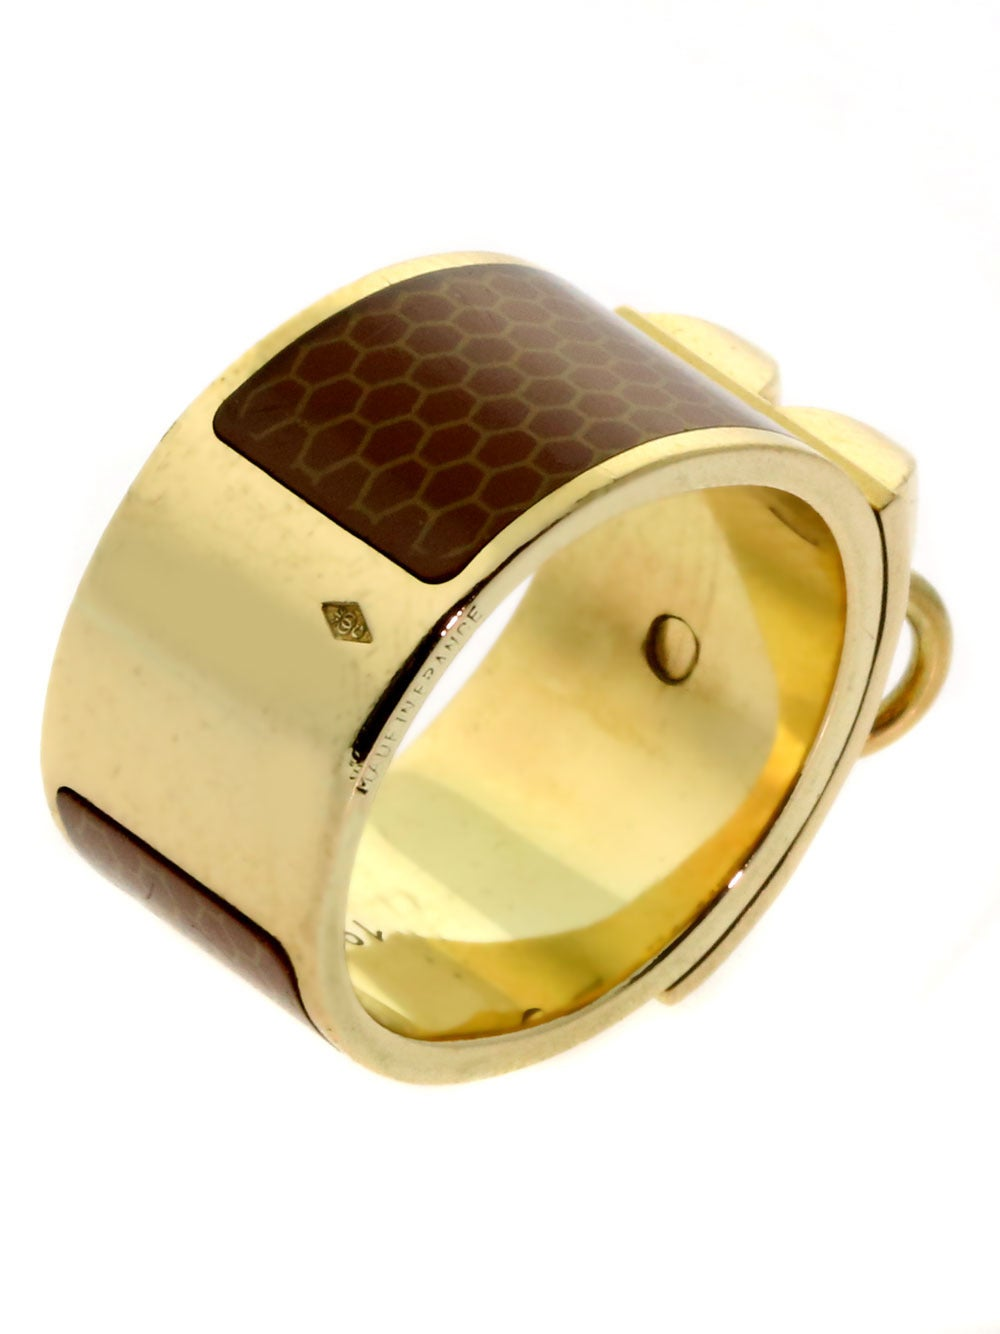 Hermes Collier de Chien Gold Ring In Excellent Condition For Sale In Feasterville, PA